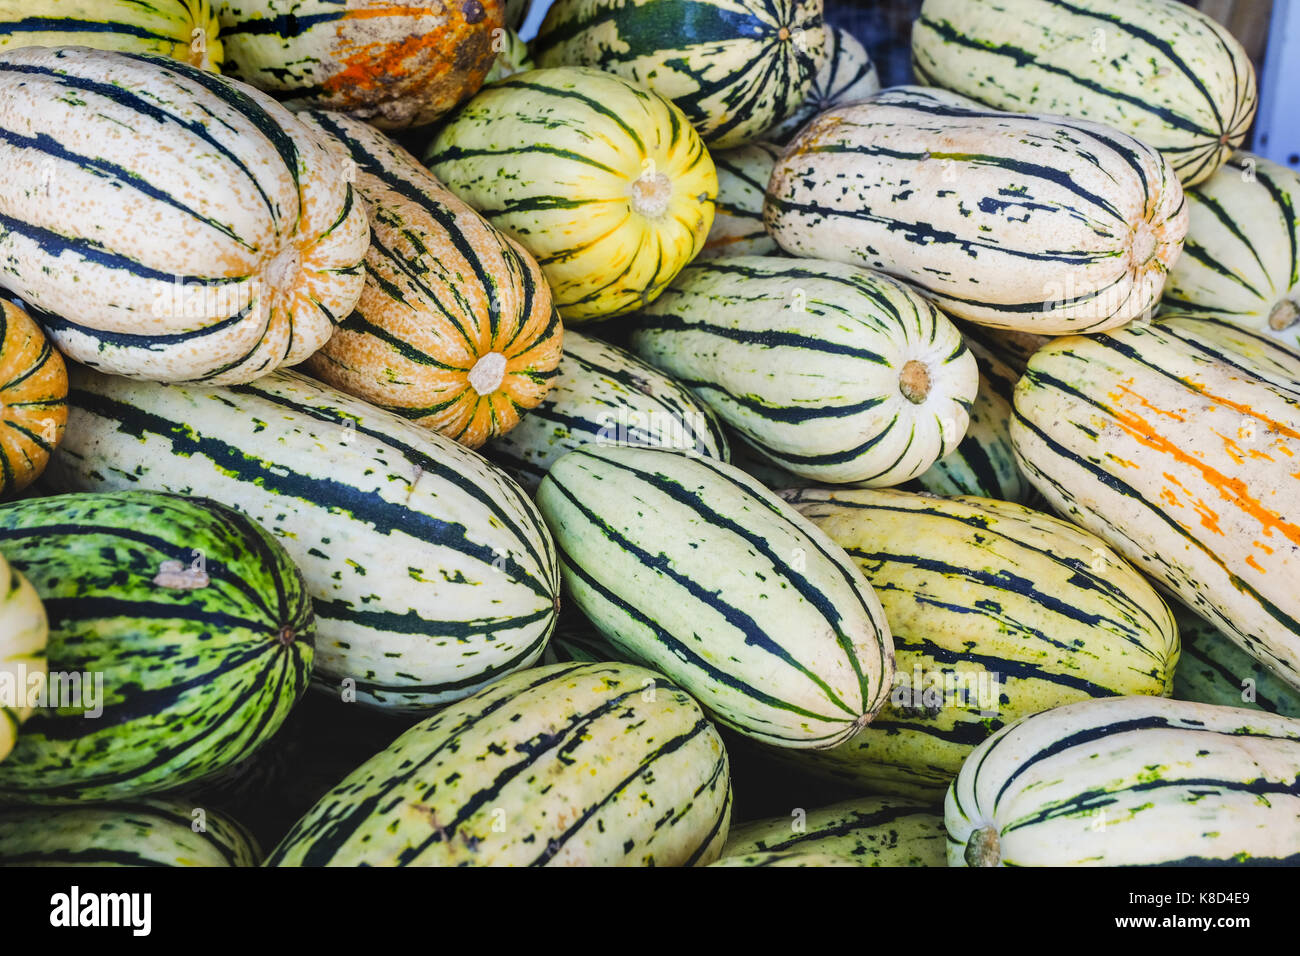 Potato Sweet Squash in a container at fresh market - Stock Image